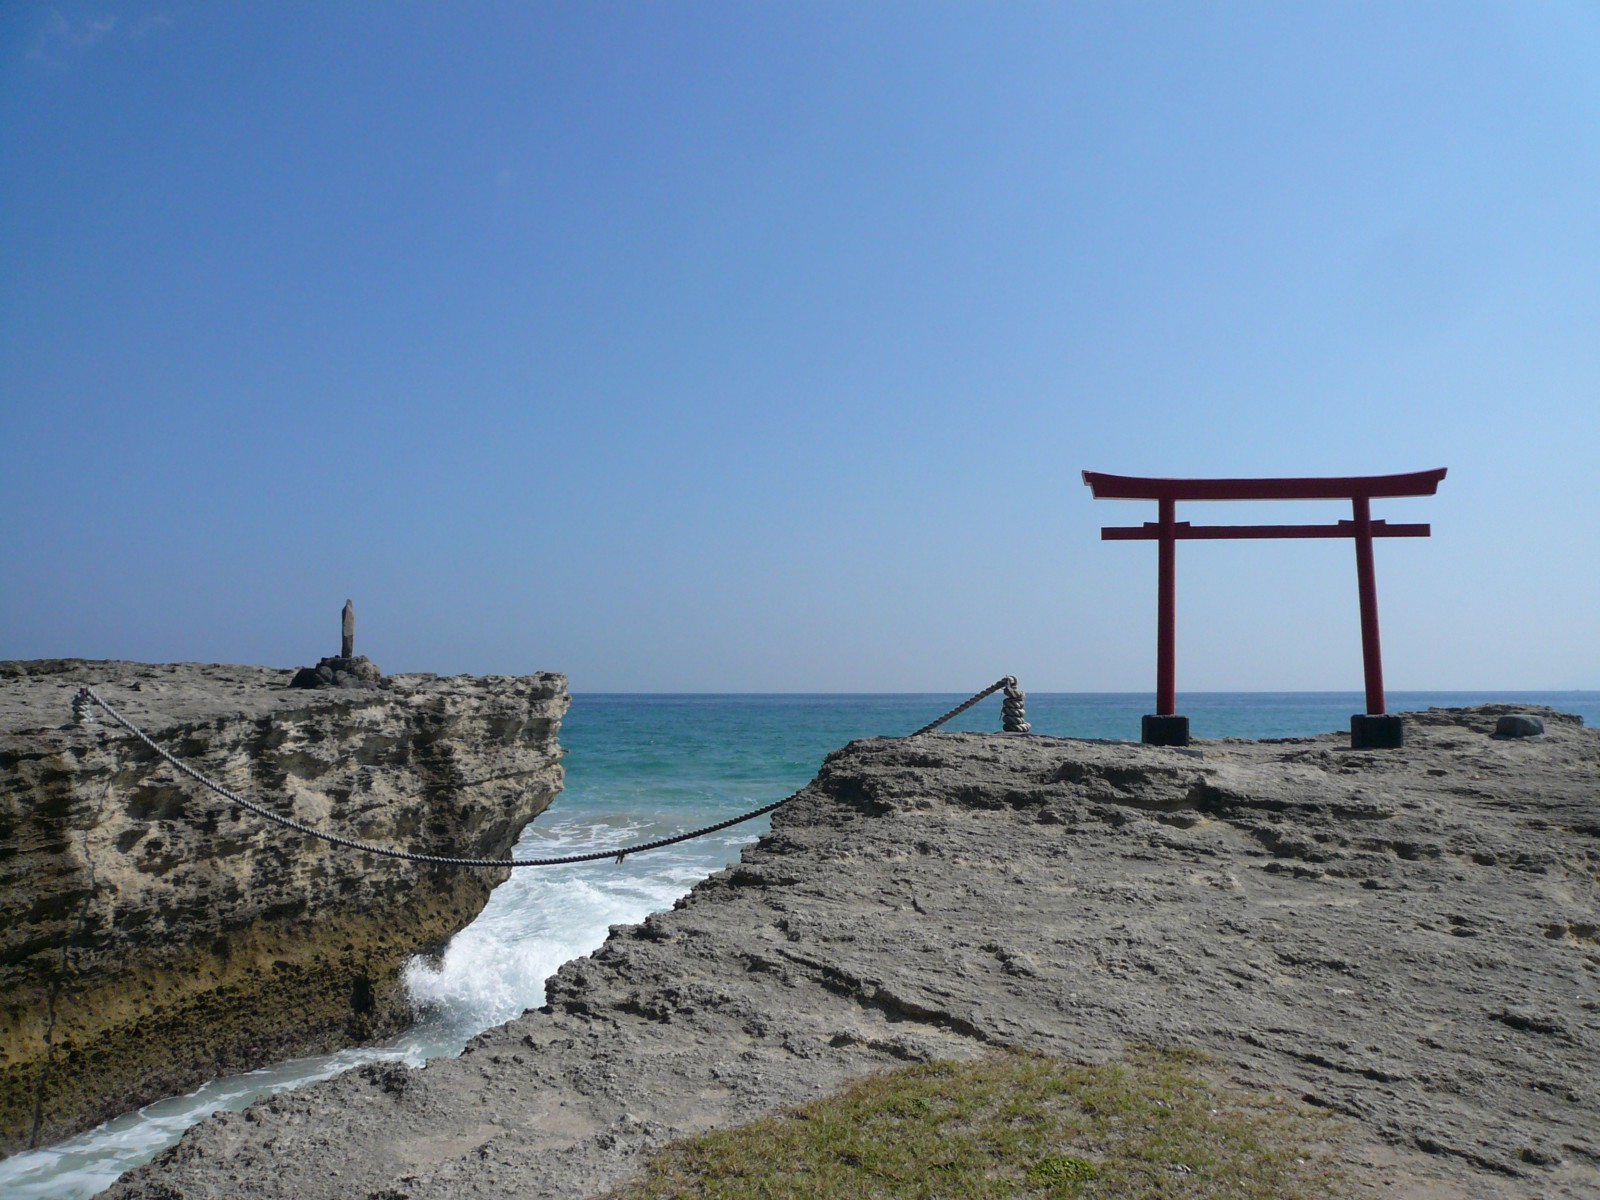 The Iconic Torii Gate at Shirahama Beach